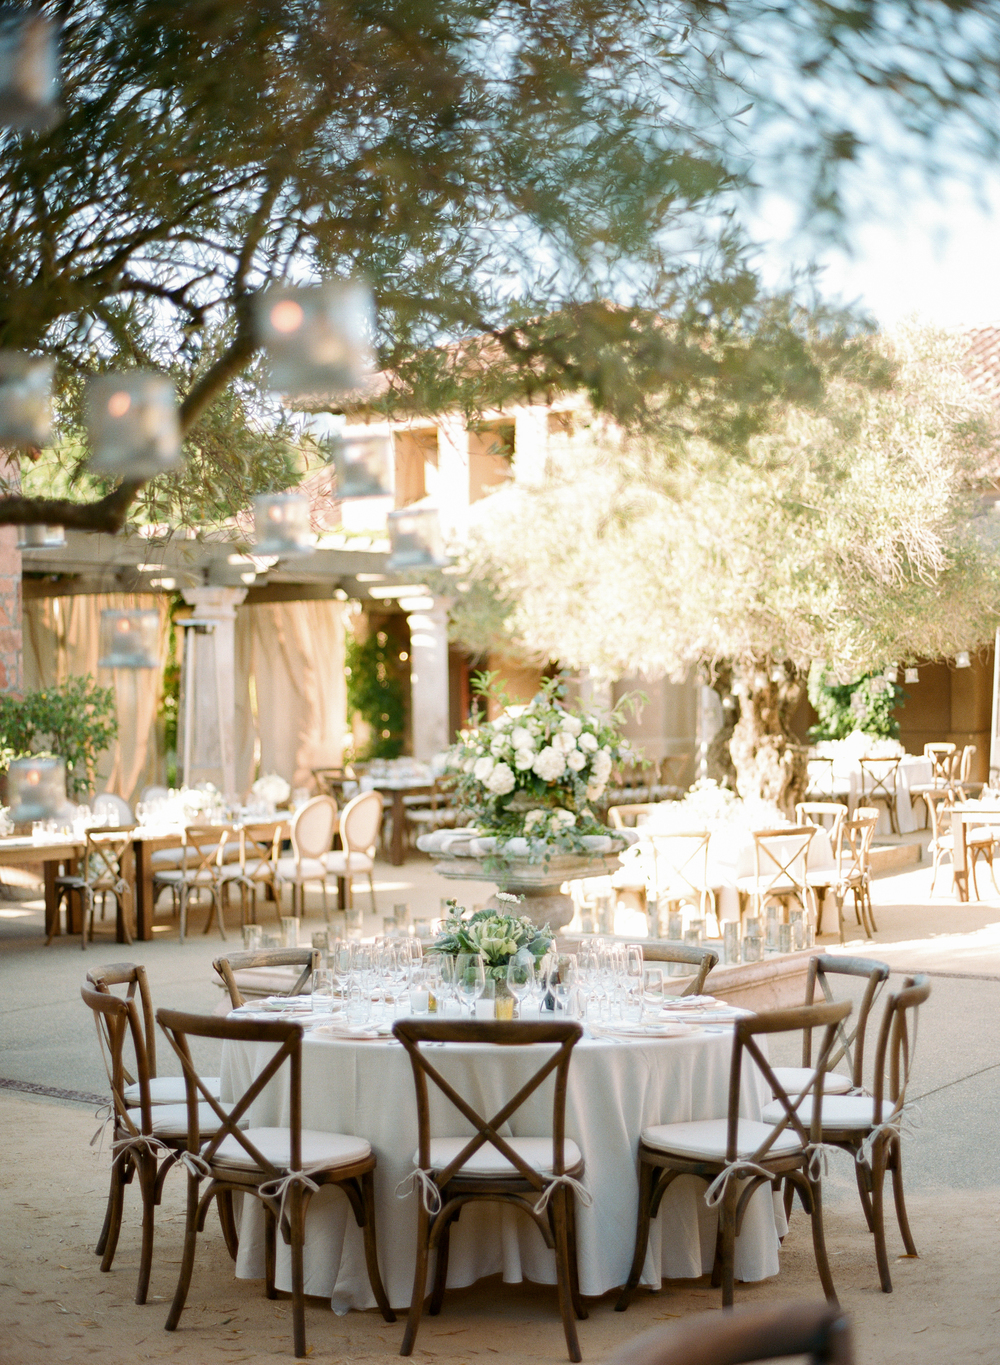 Outdoor reception tables arranged in Calistoga Ranch courtyard under olive trees; Sylvie Gil Photography